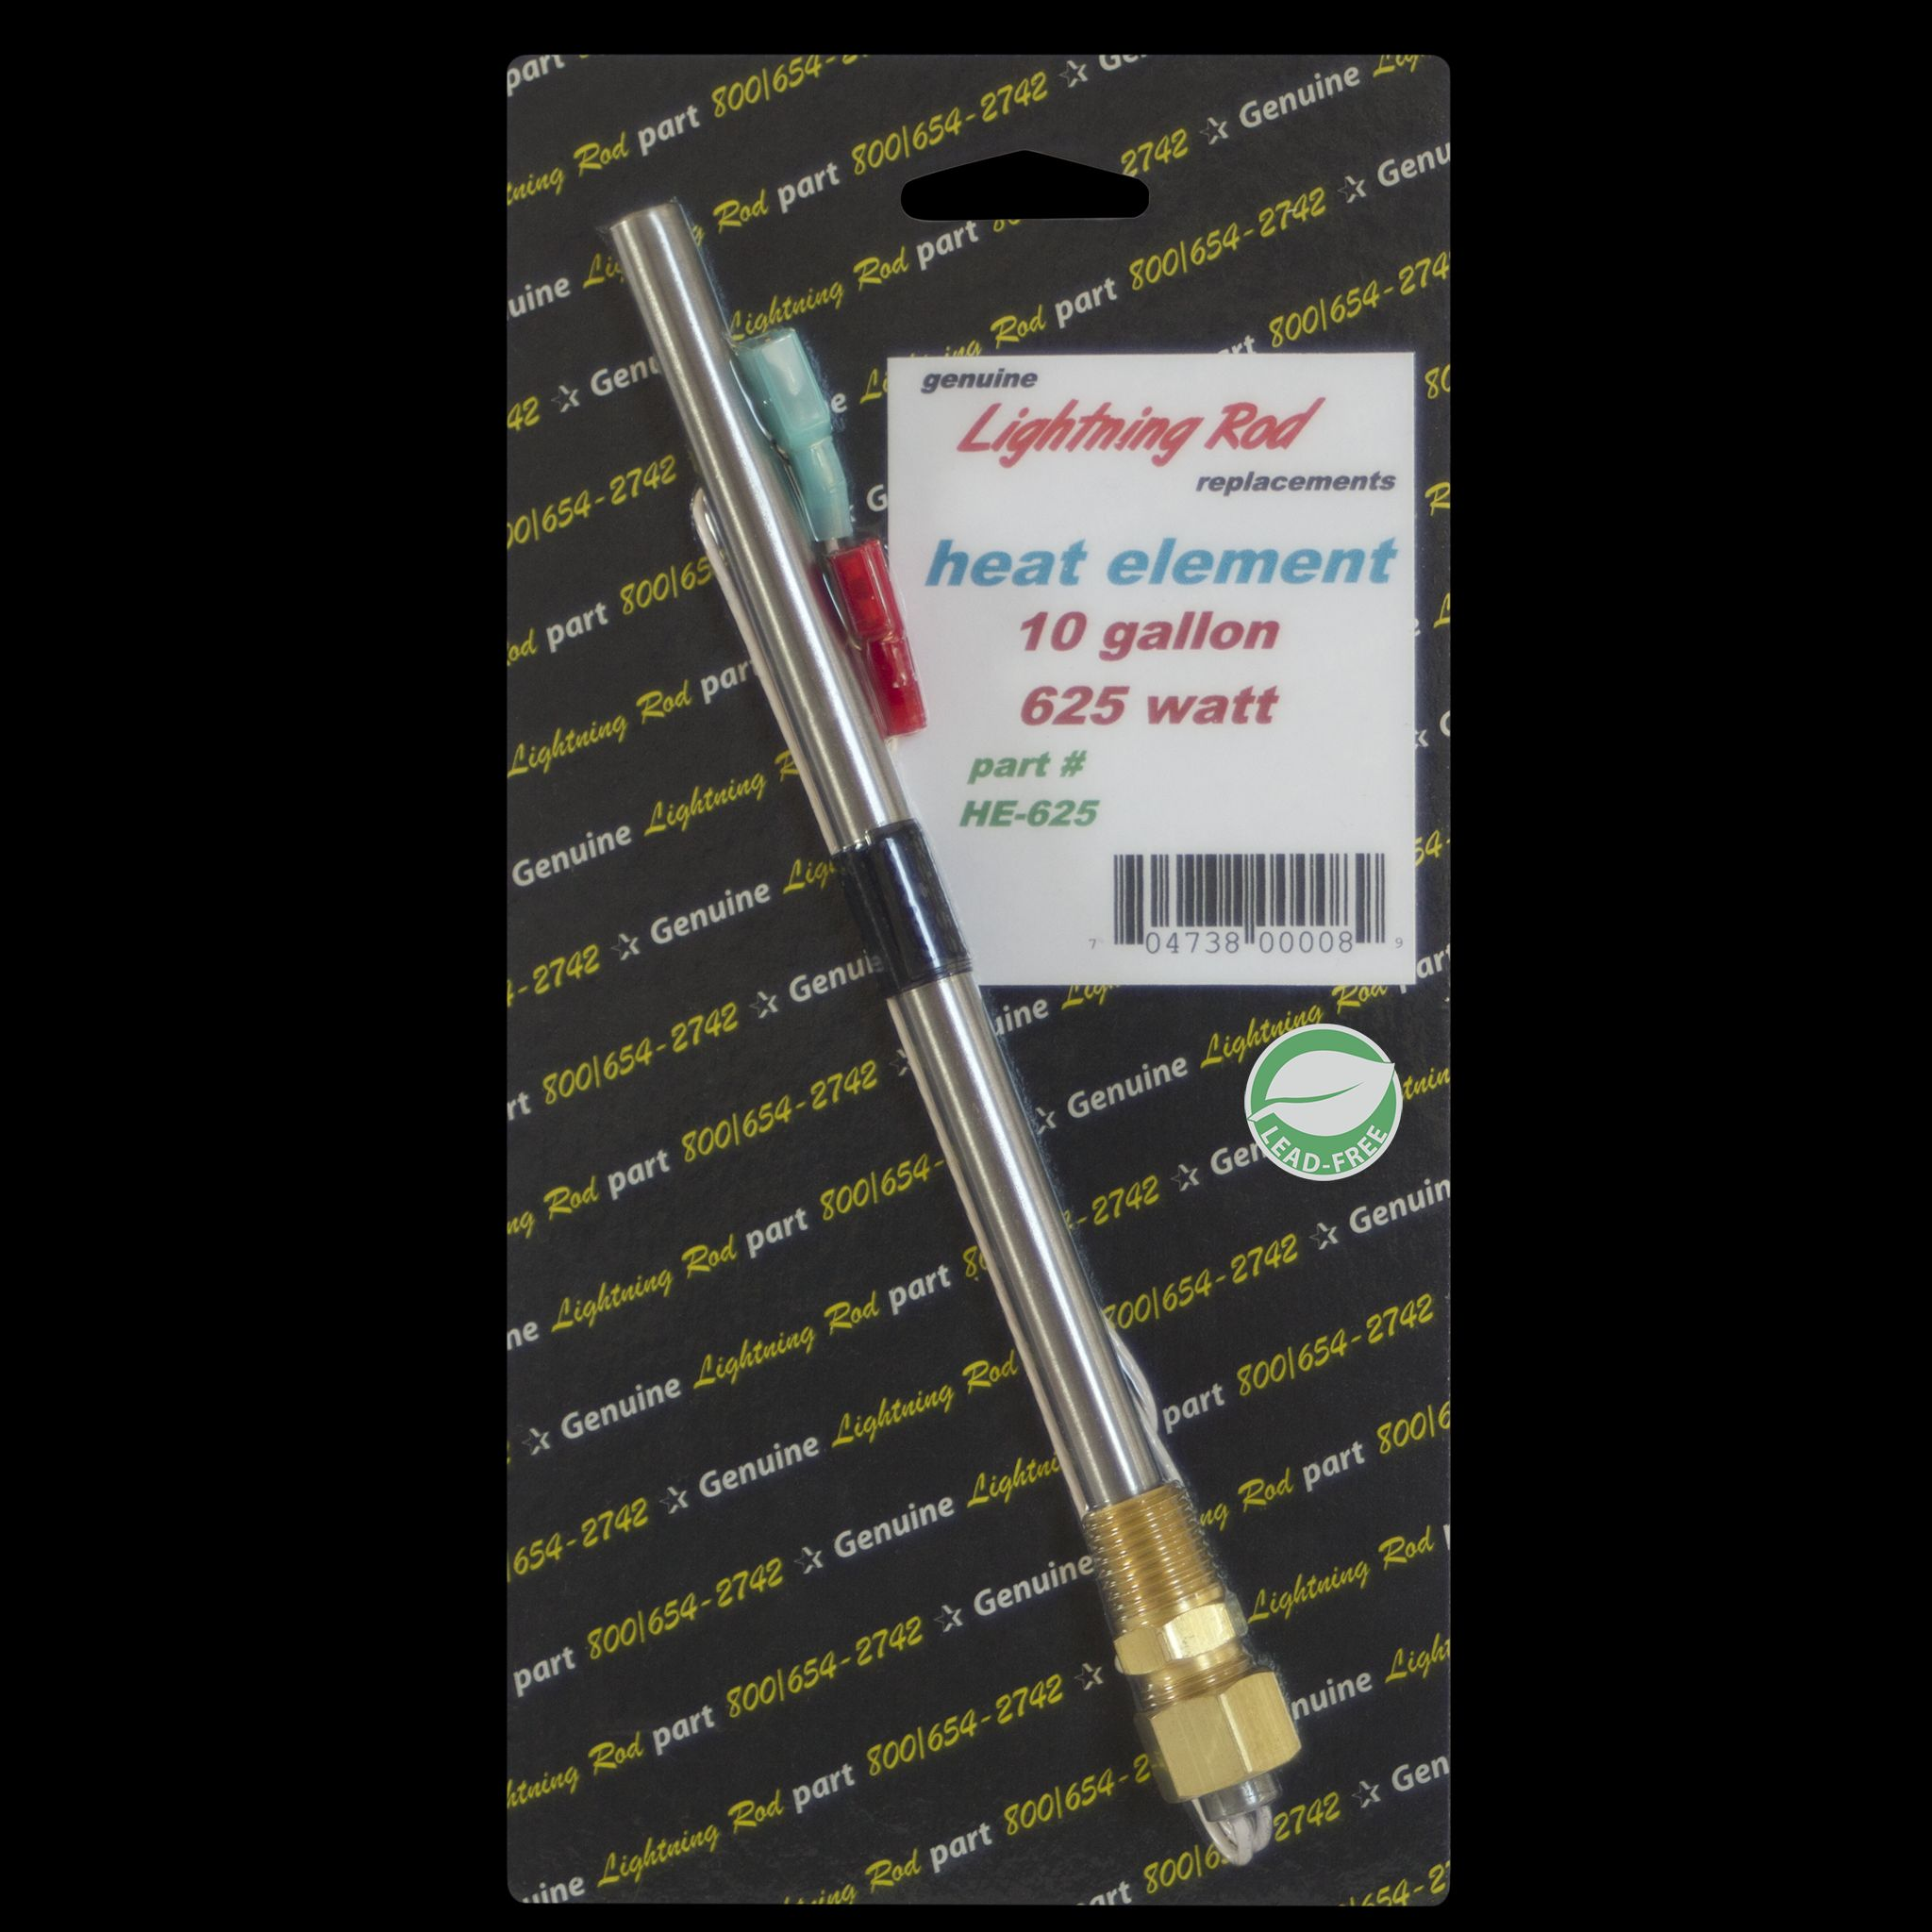 HE-625 Western Leisure Products Inc Water Heater Element Universal